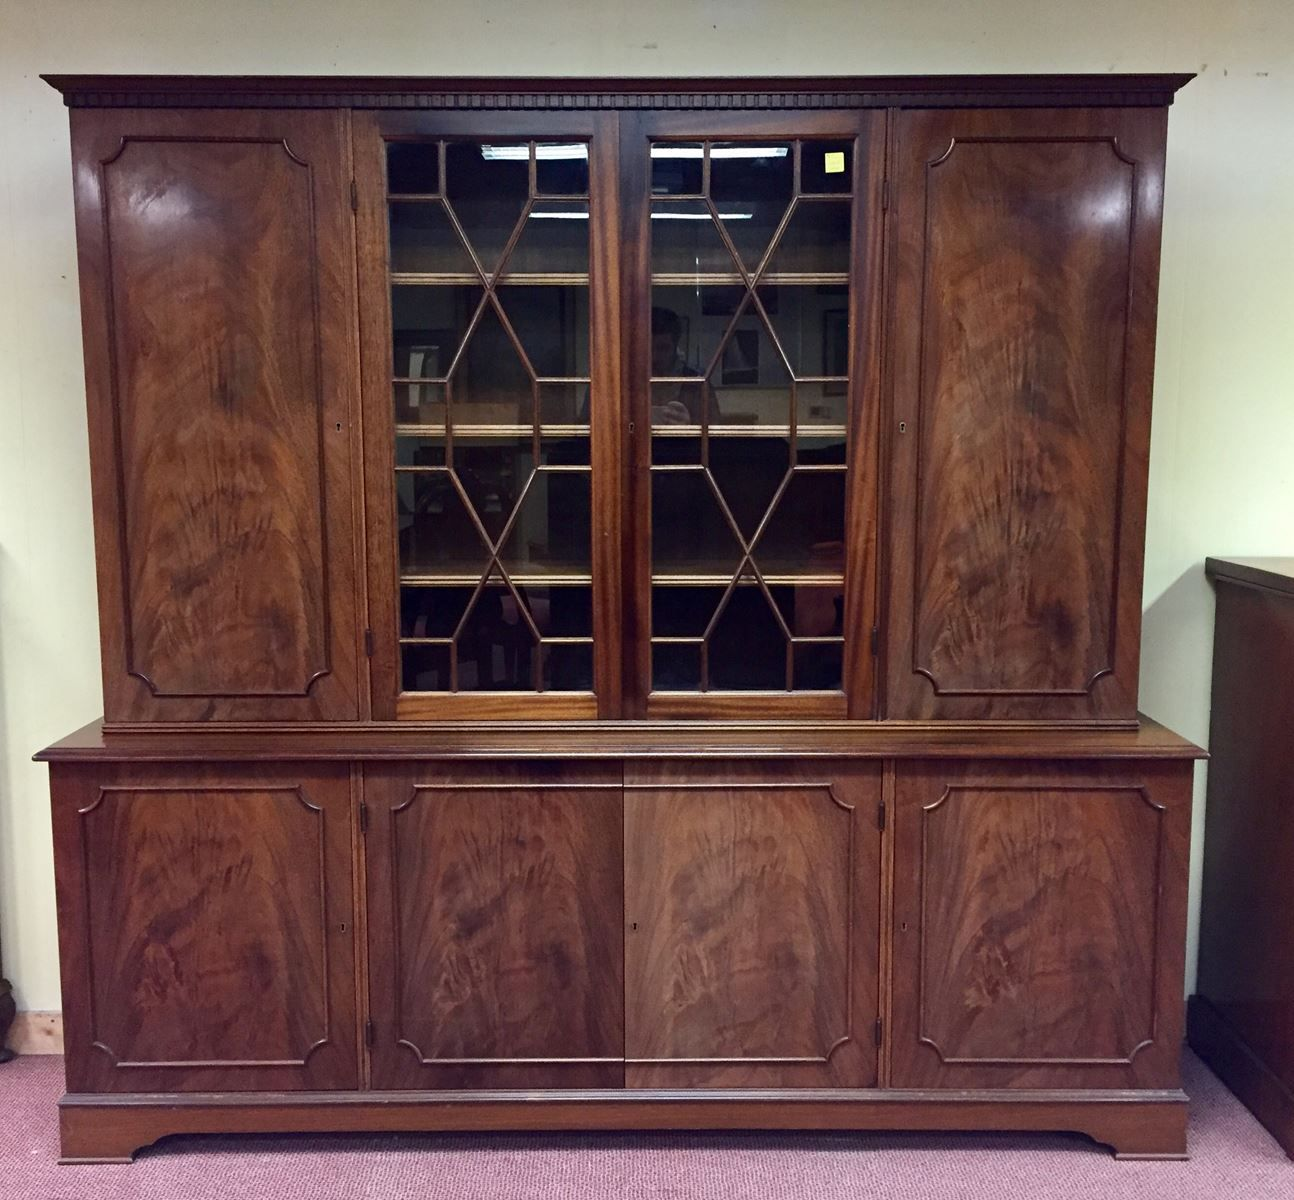 Mahogany 8 Doors Library 1950s & Mahogany 8 Doors Library 1950s for sale at Pamono pezcame.com